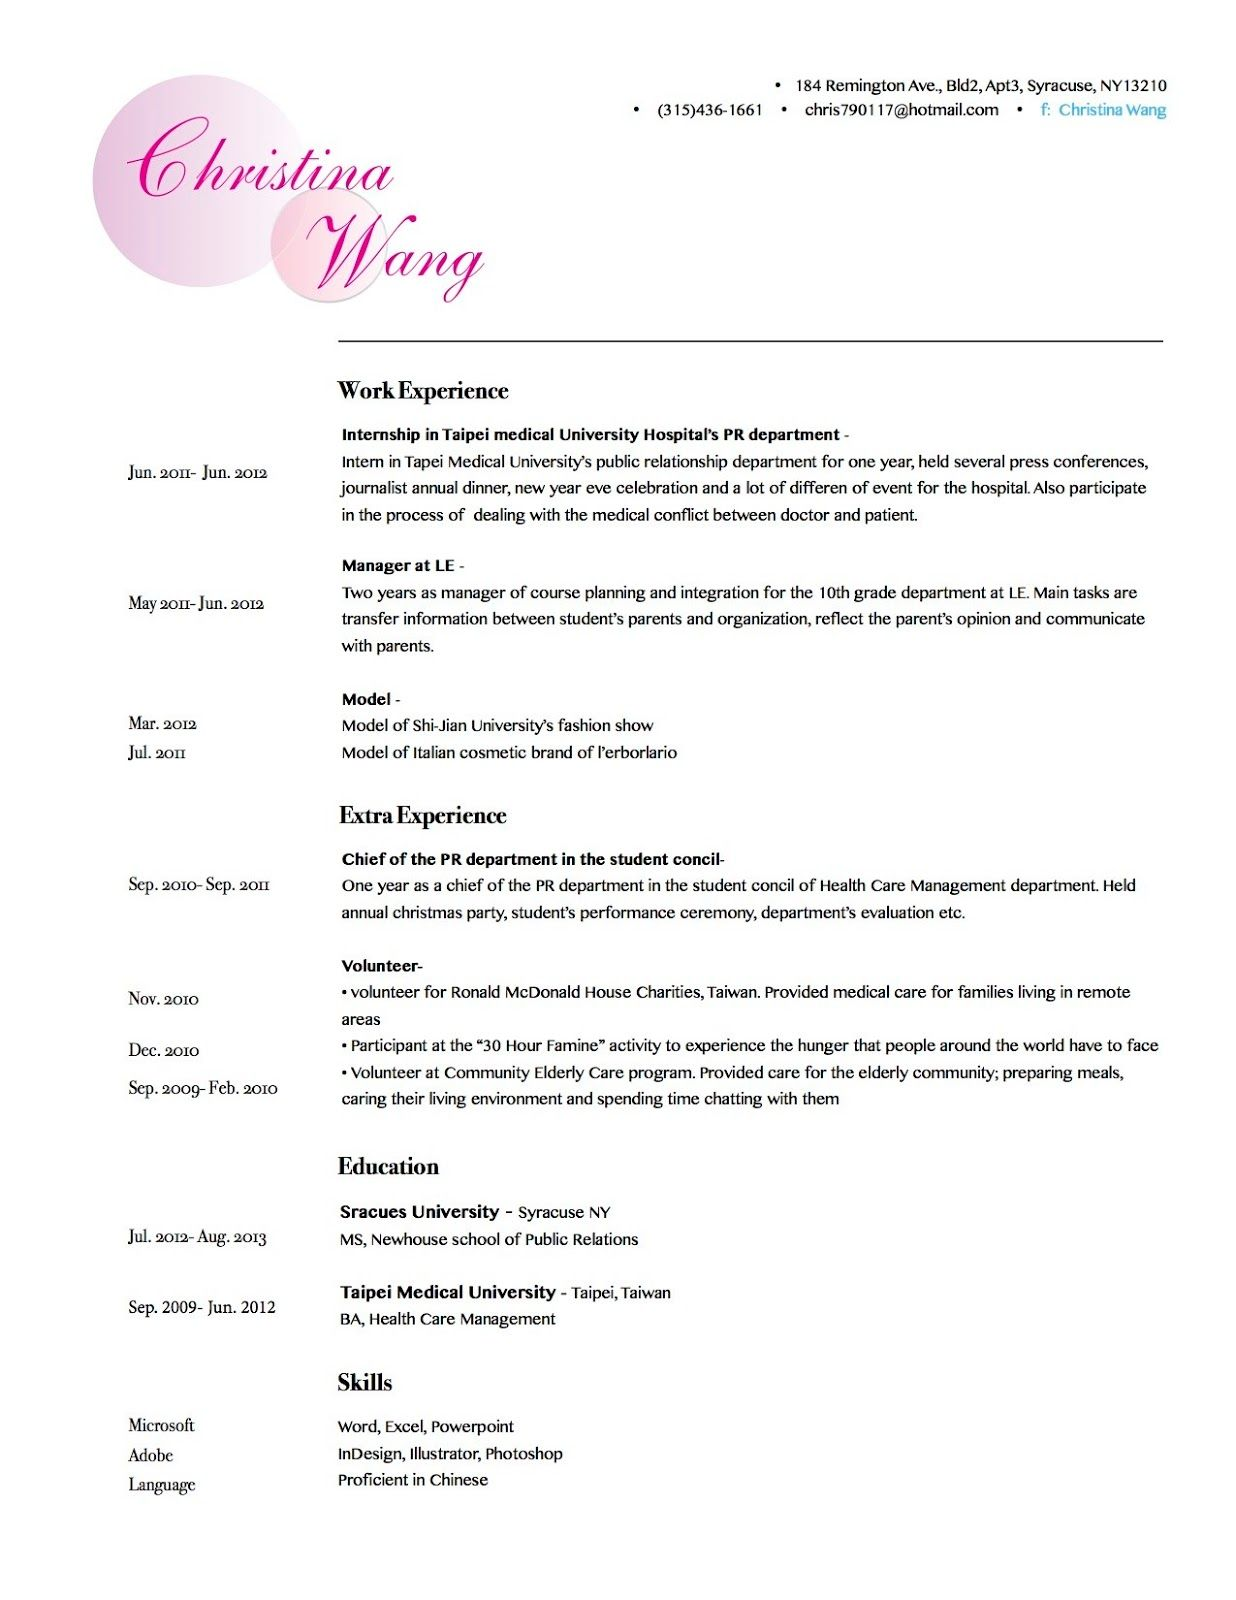 Writing Your Own Resume Reasons It Is Smart To Use A Resume Template To Write Your